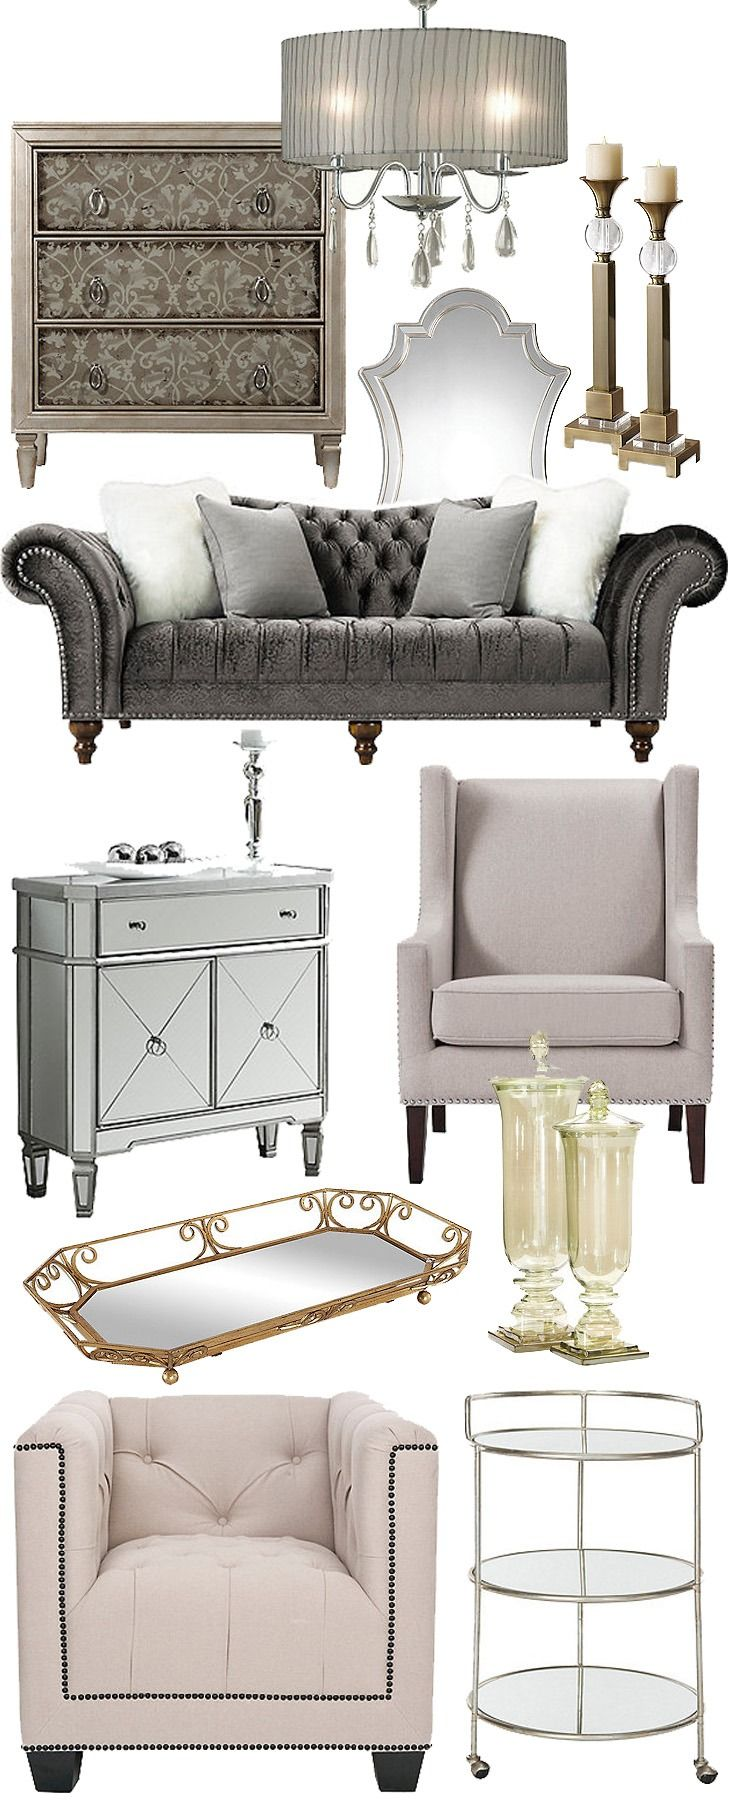 Sumptuously Showy Yet Still Refined Vintage Glam Combines